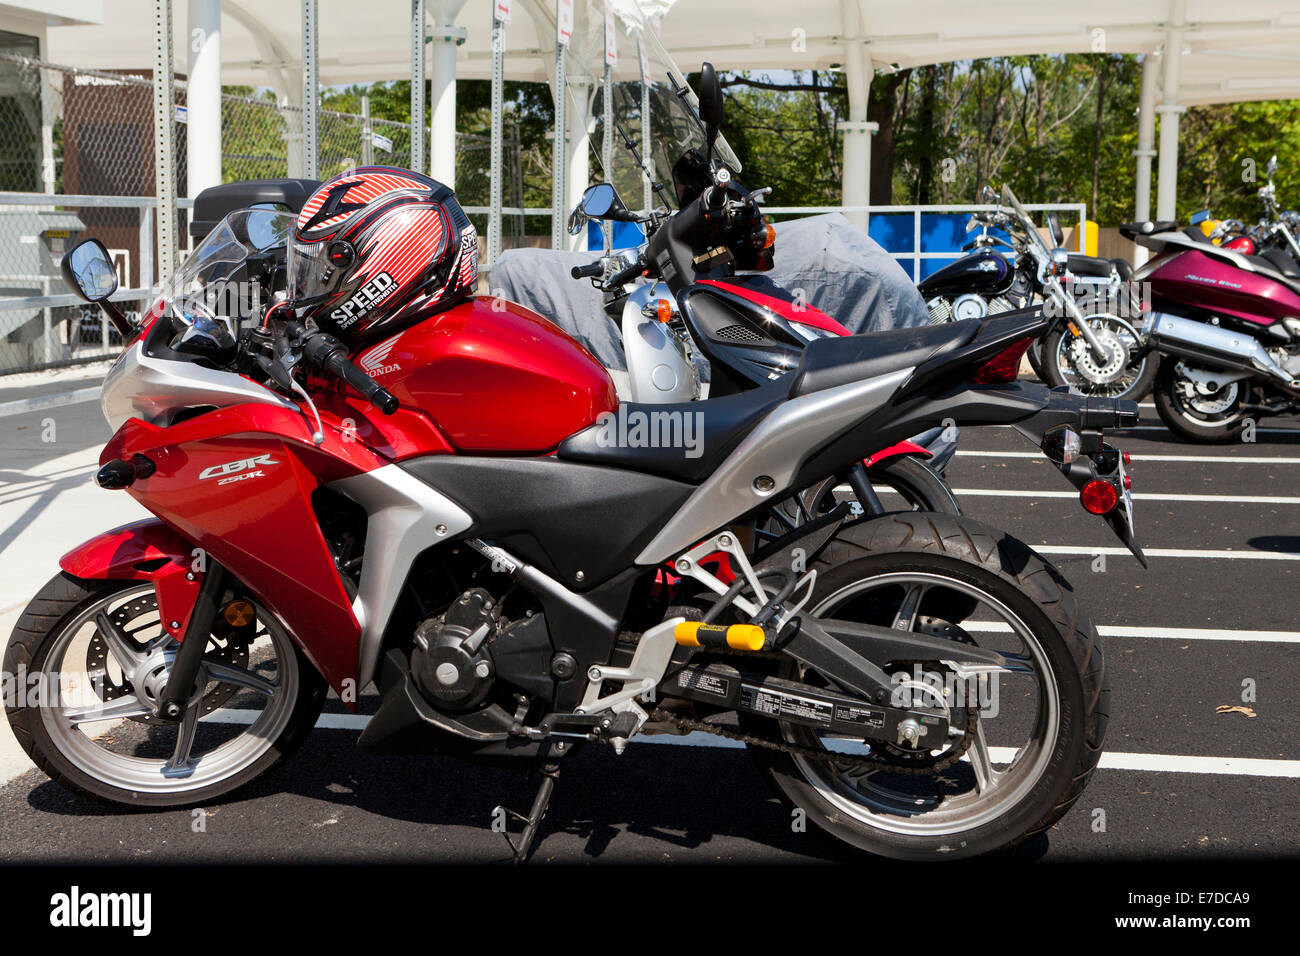 free motorcycle parking knightsbridge  Motorcycle Parking Area Stock Photos